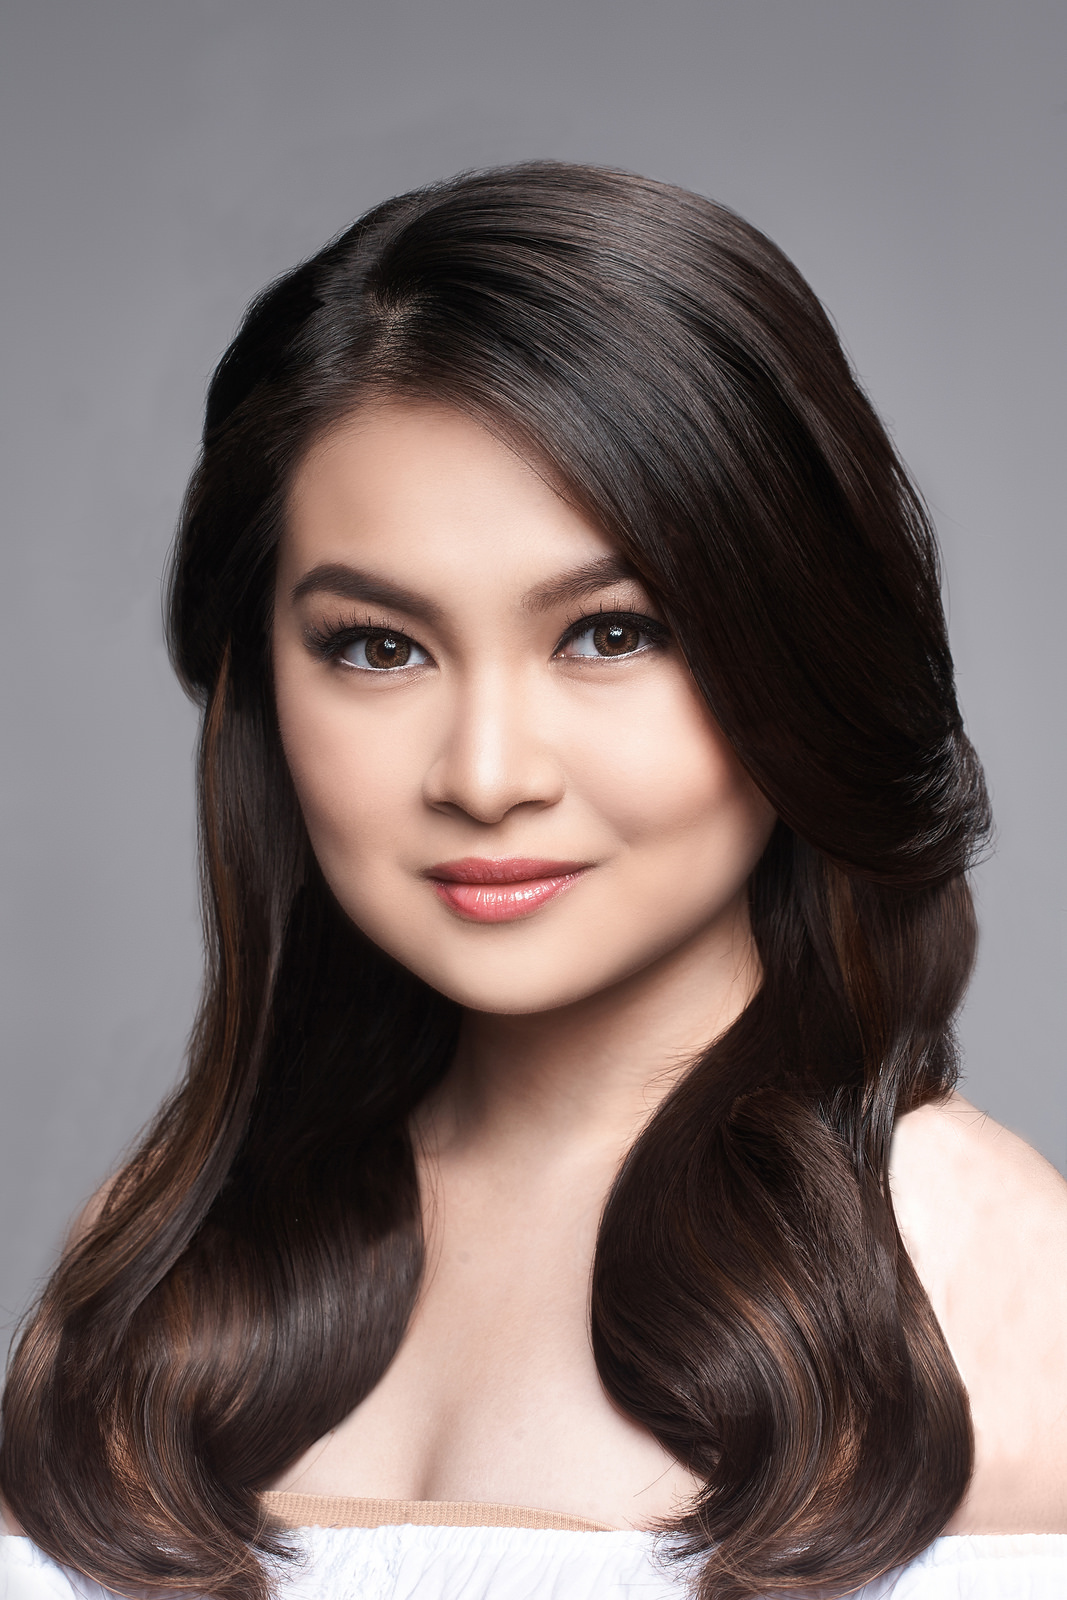 Model Barbie Forteza - age: 23